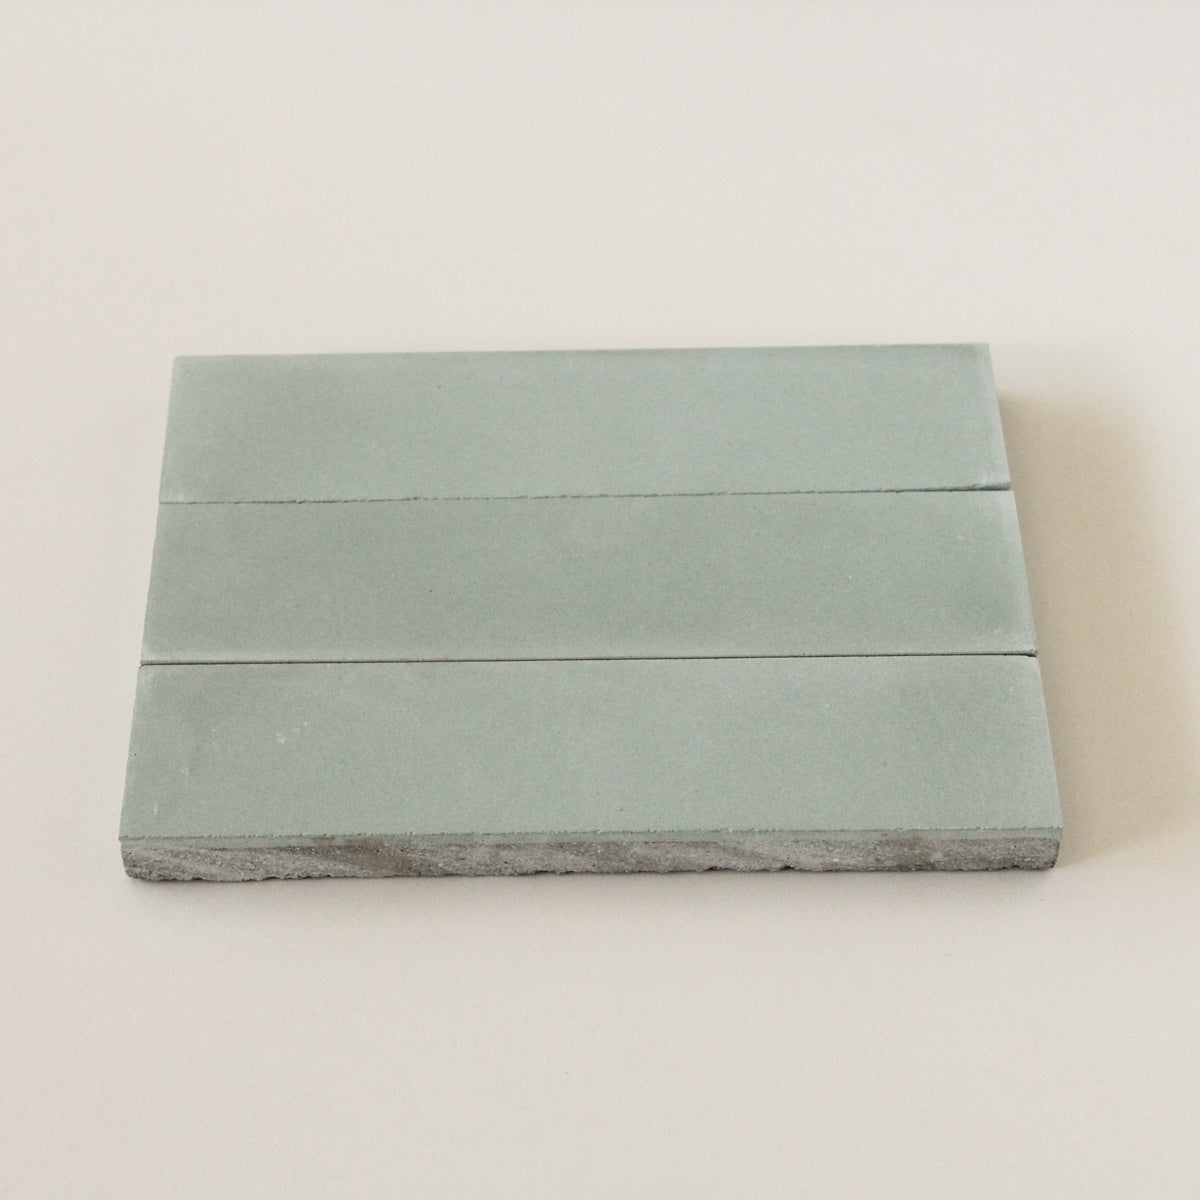 Spearmint cement Individual Tile Sample